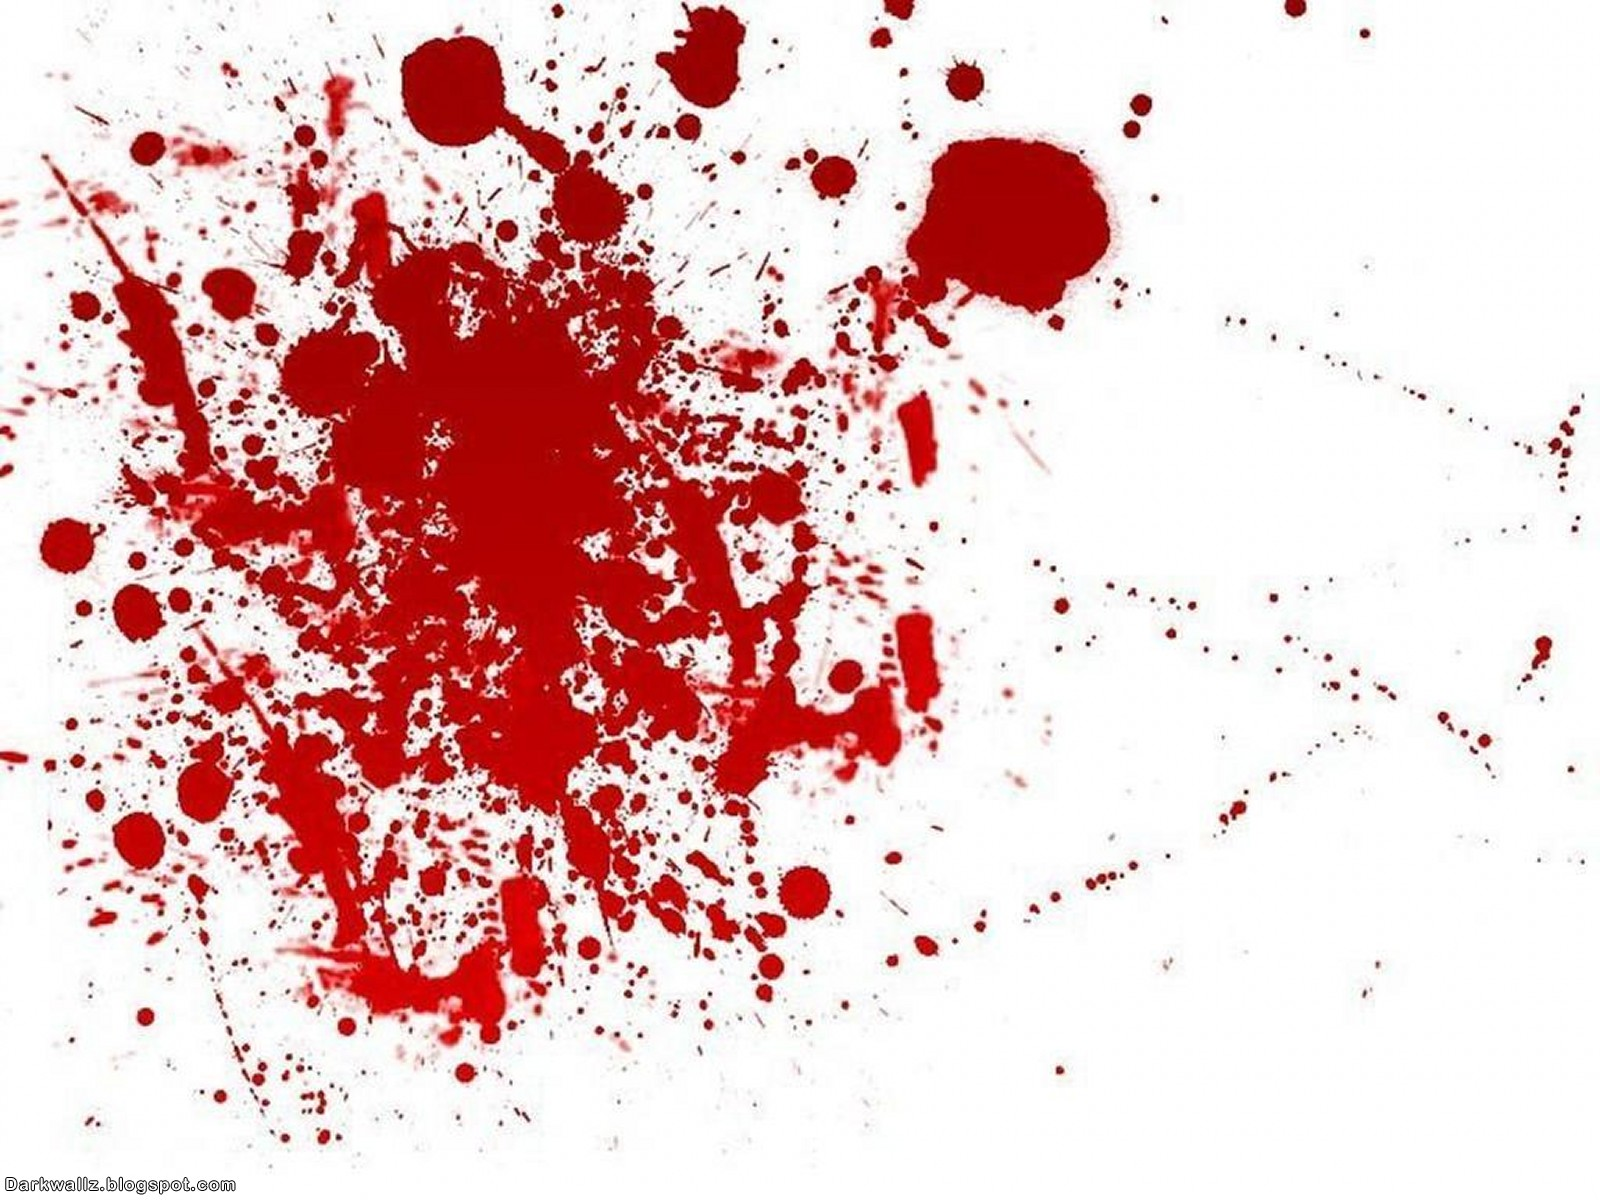 Blood Wallpapers 09 | Dark Wallpaper Download